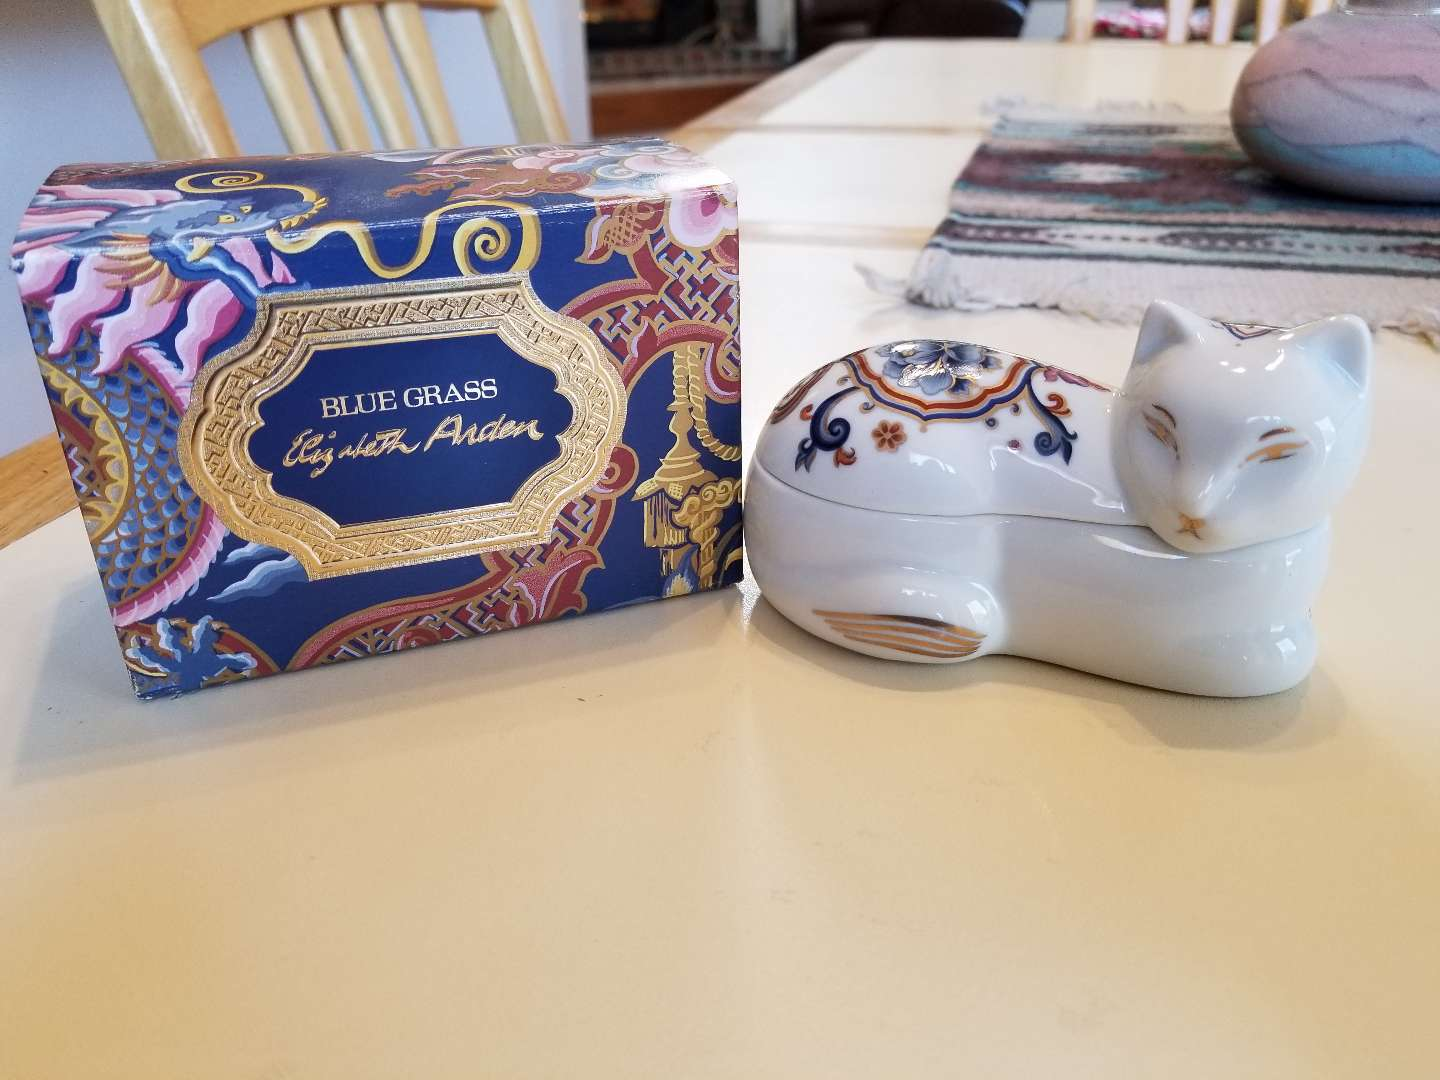 Photo NEVER USED VINTAGE 1980S ELIZABETH ARDEN CHINOISERIE COLLECTION CAT TRINKET CANDLE BLUE GRASS. PICK UP MIDDLEBORO ONLY